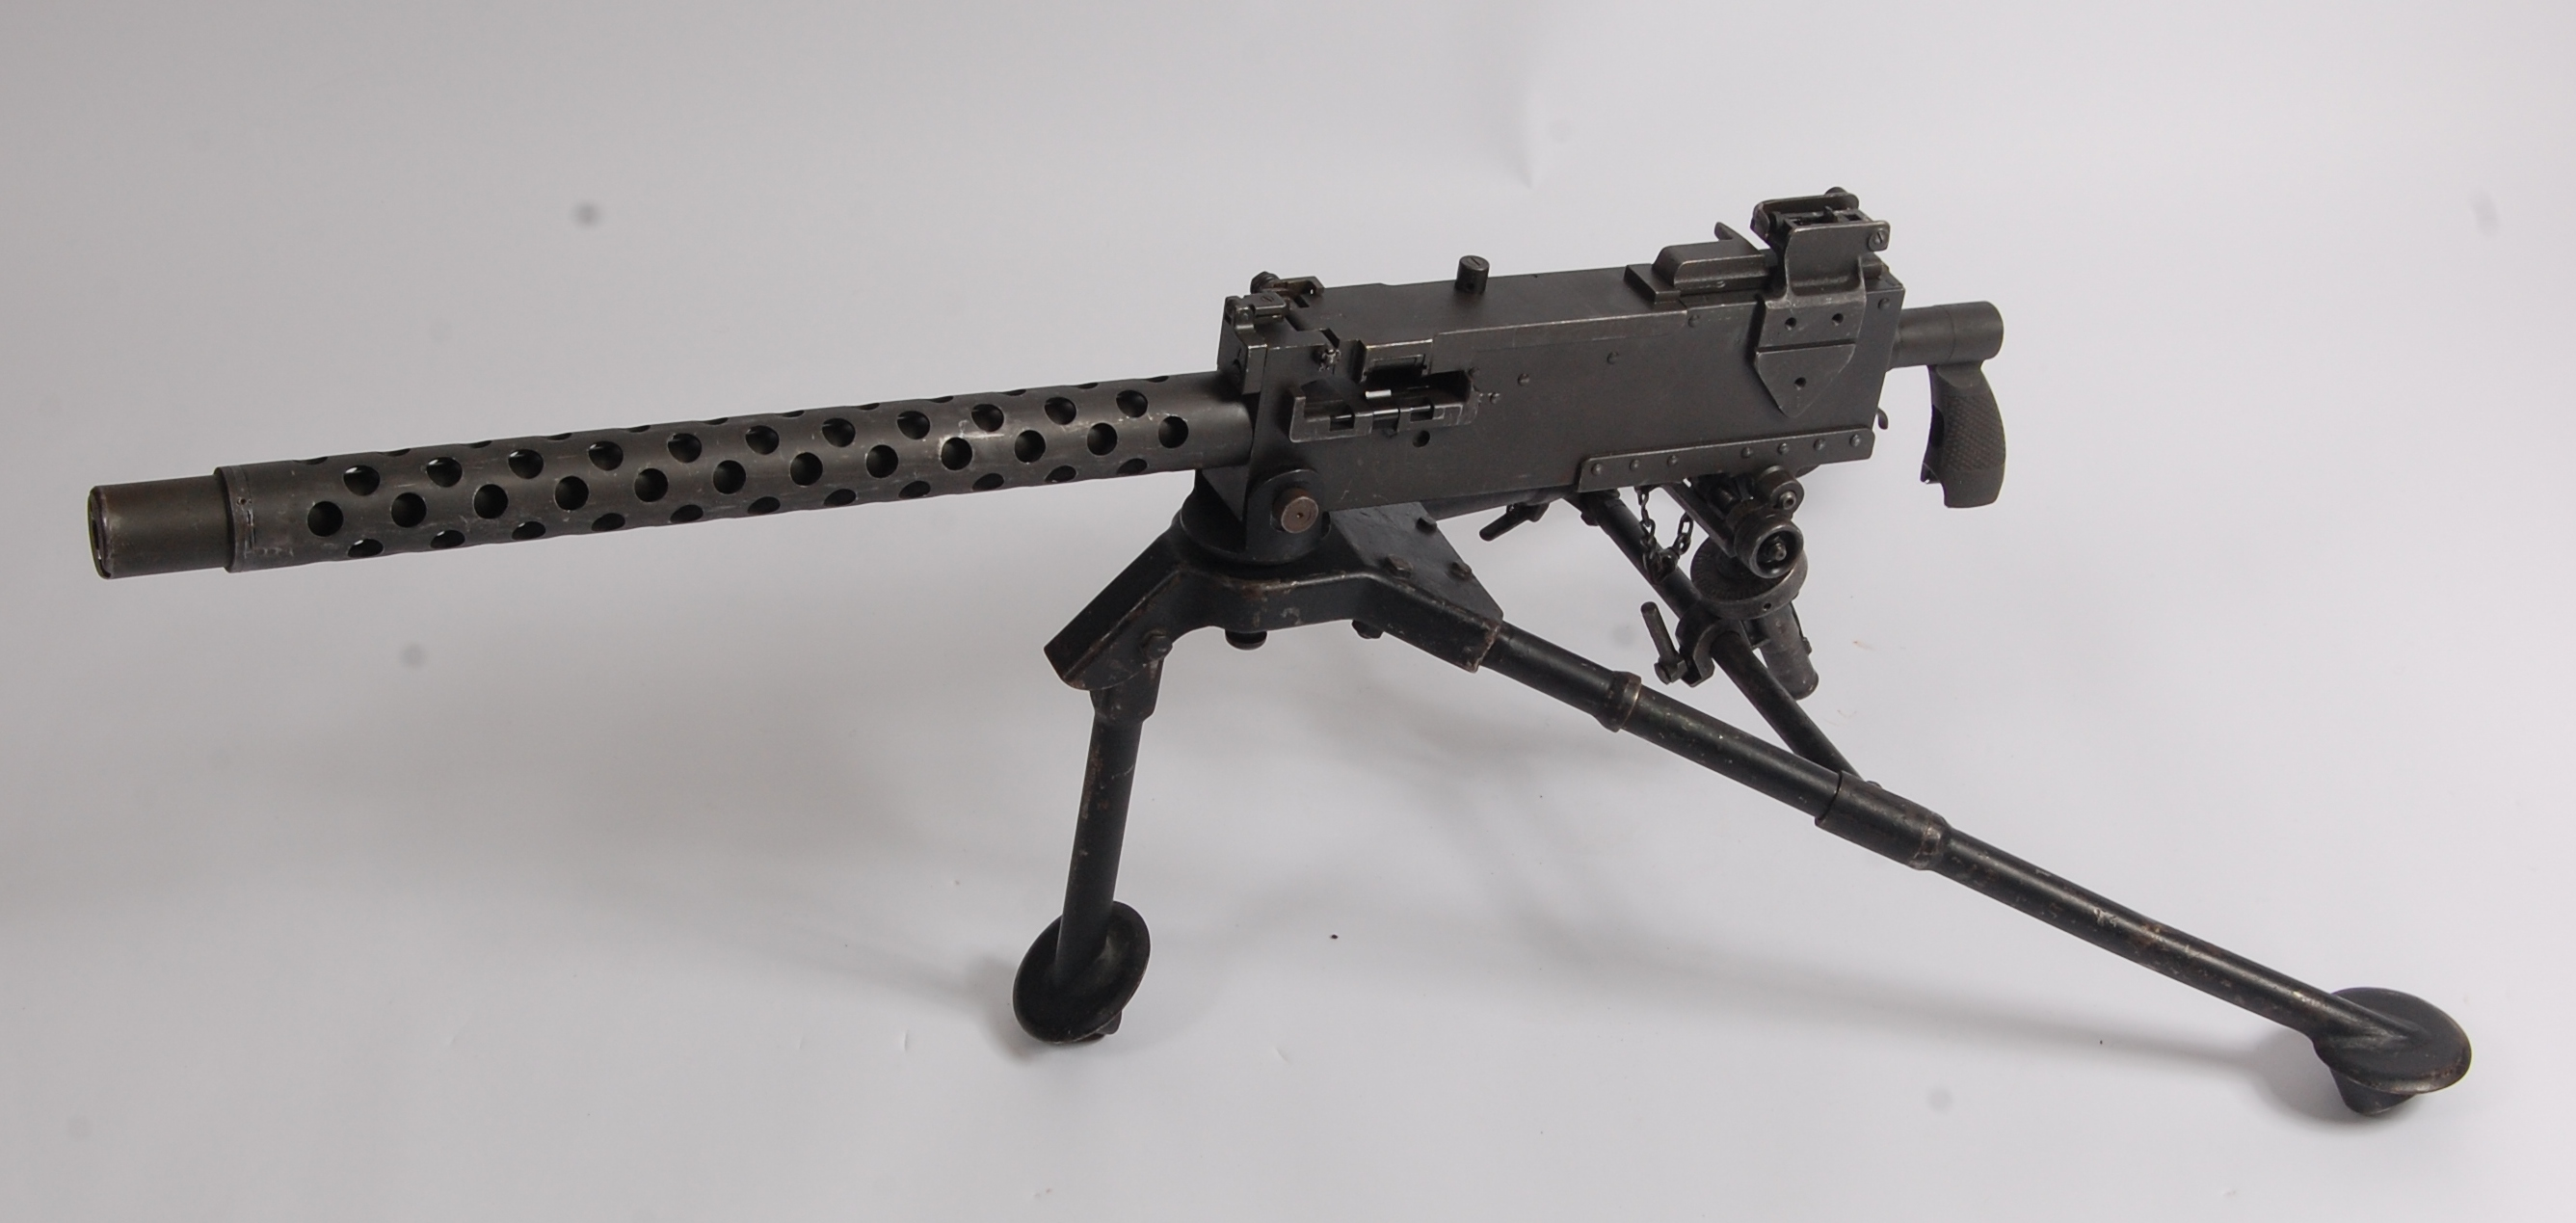 M1919 Browning Machine Gun Backgrounds, Compatible - PC, Mobile, Gadgets  2673x1269 px